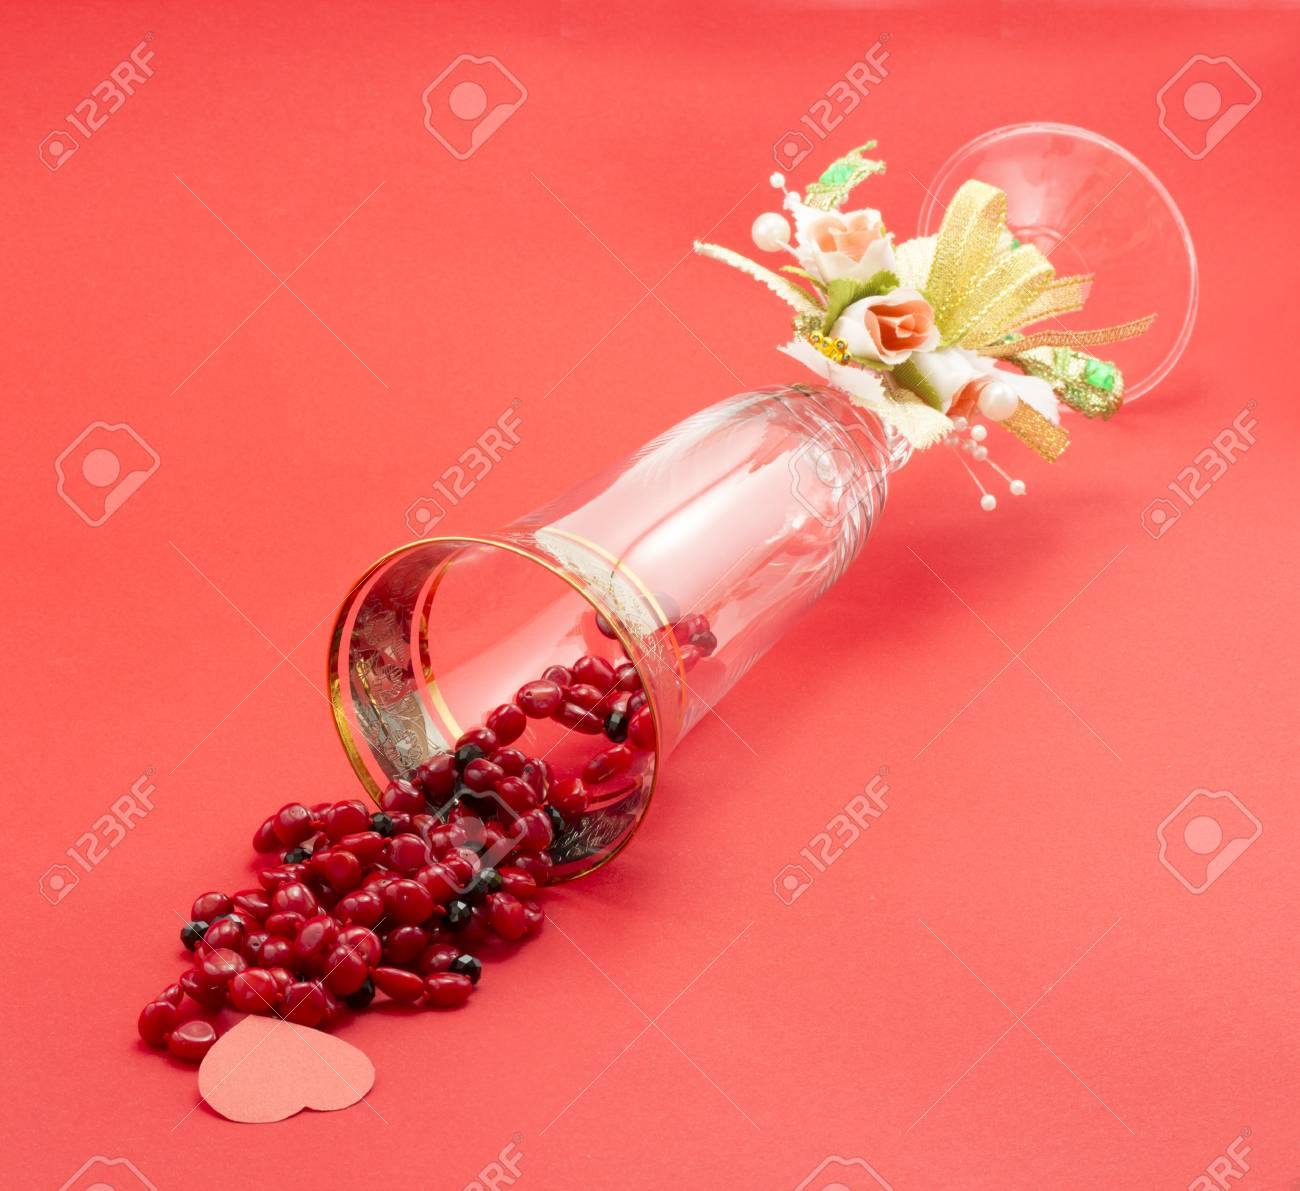 wineglass isolated on red background Stock Photo - 17408408